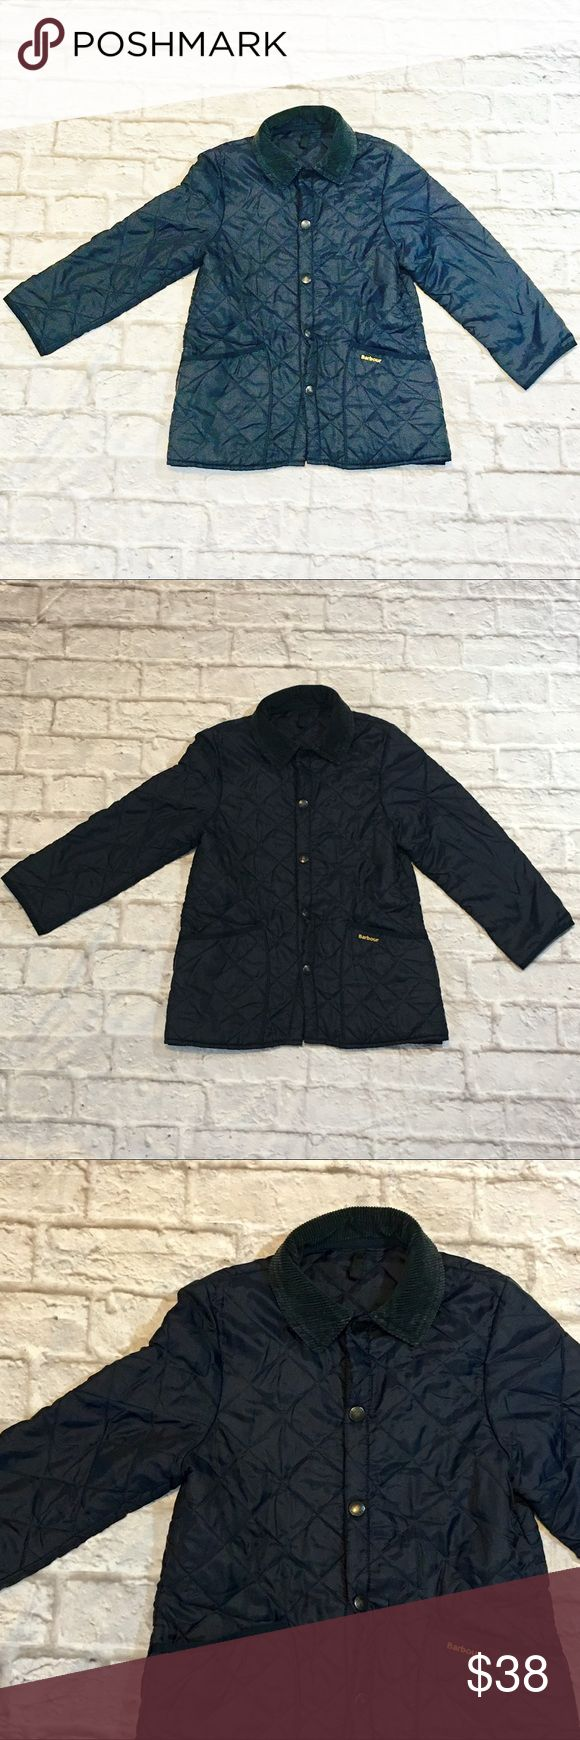 Barbour Children's quilted jacket Navy Liddesdale jacket. Size children medium. Barbour Jackets & Coats